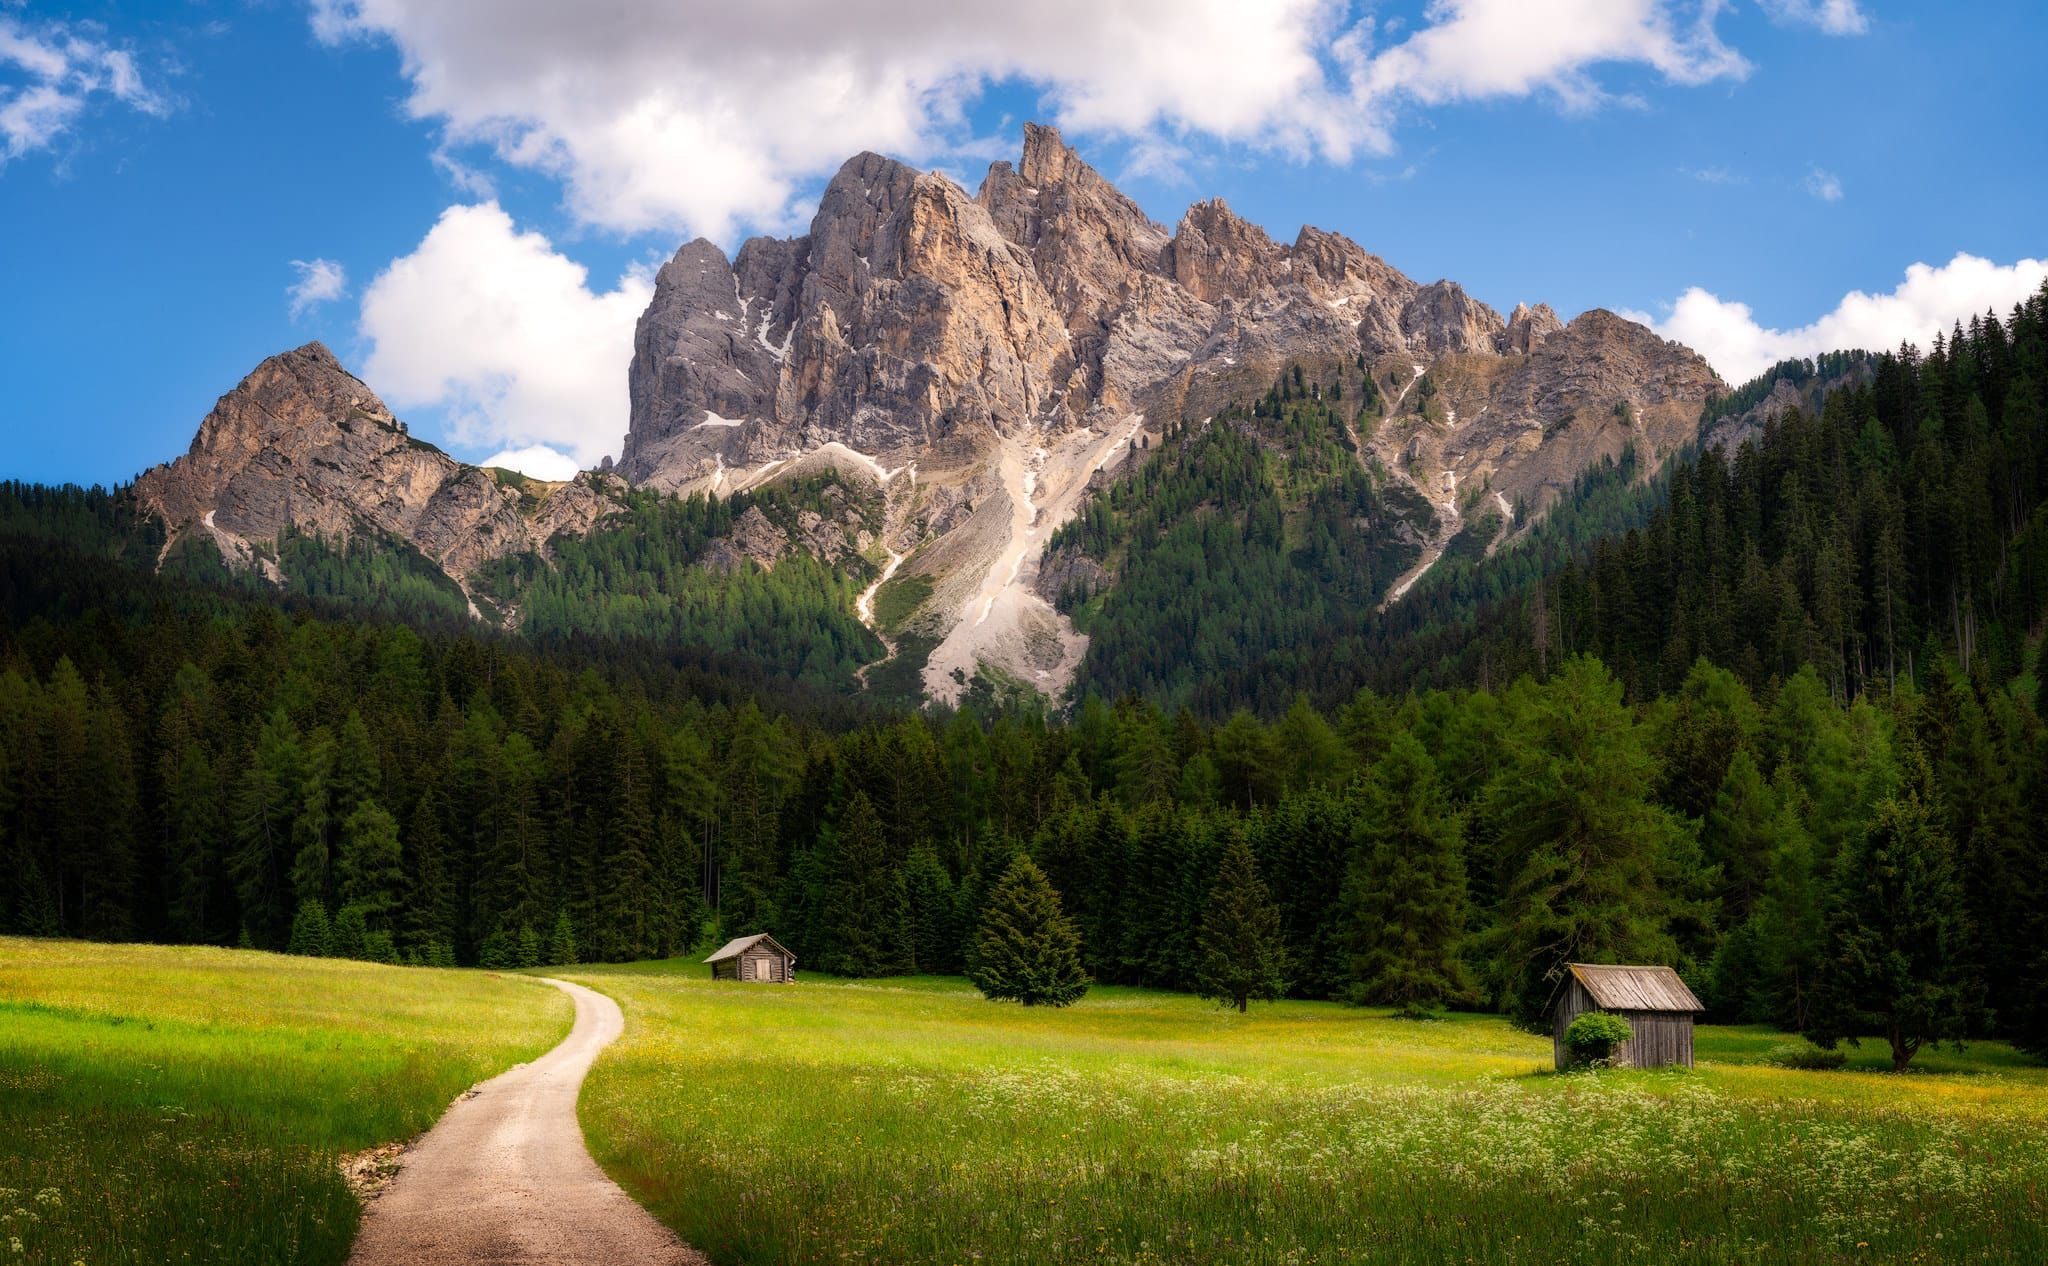 A meadow in front of Picco di Vallandro in the Dolomites in South Tirol, Italy